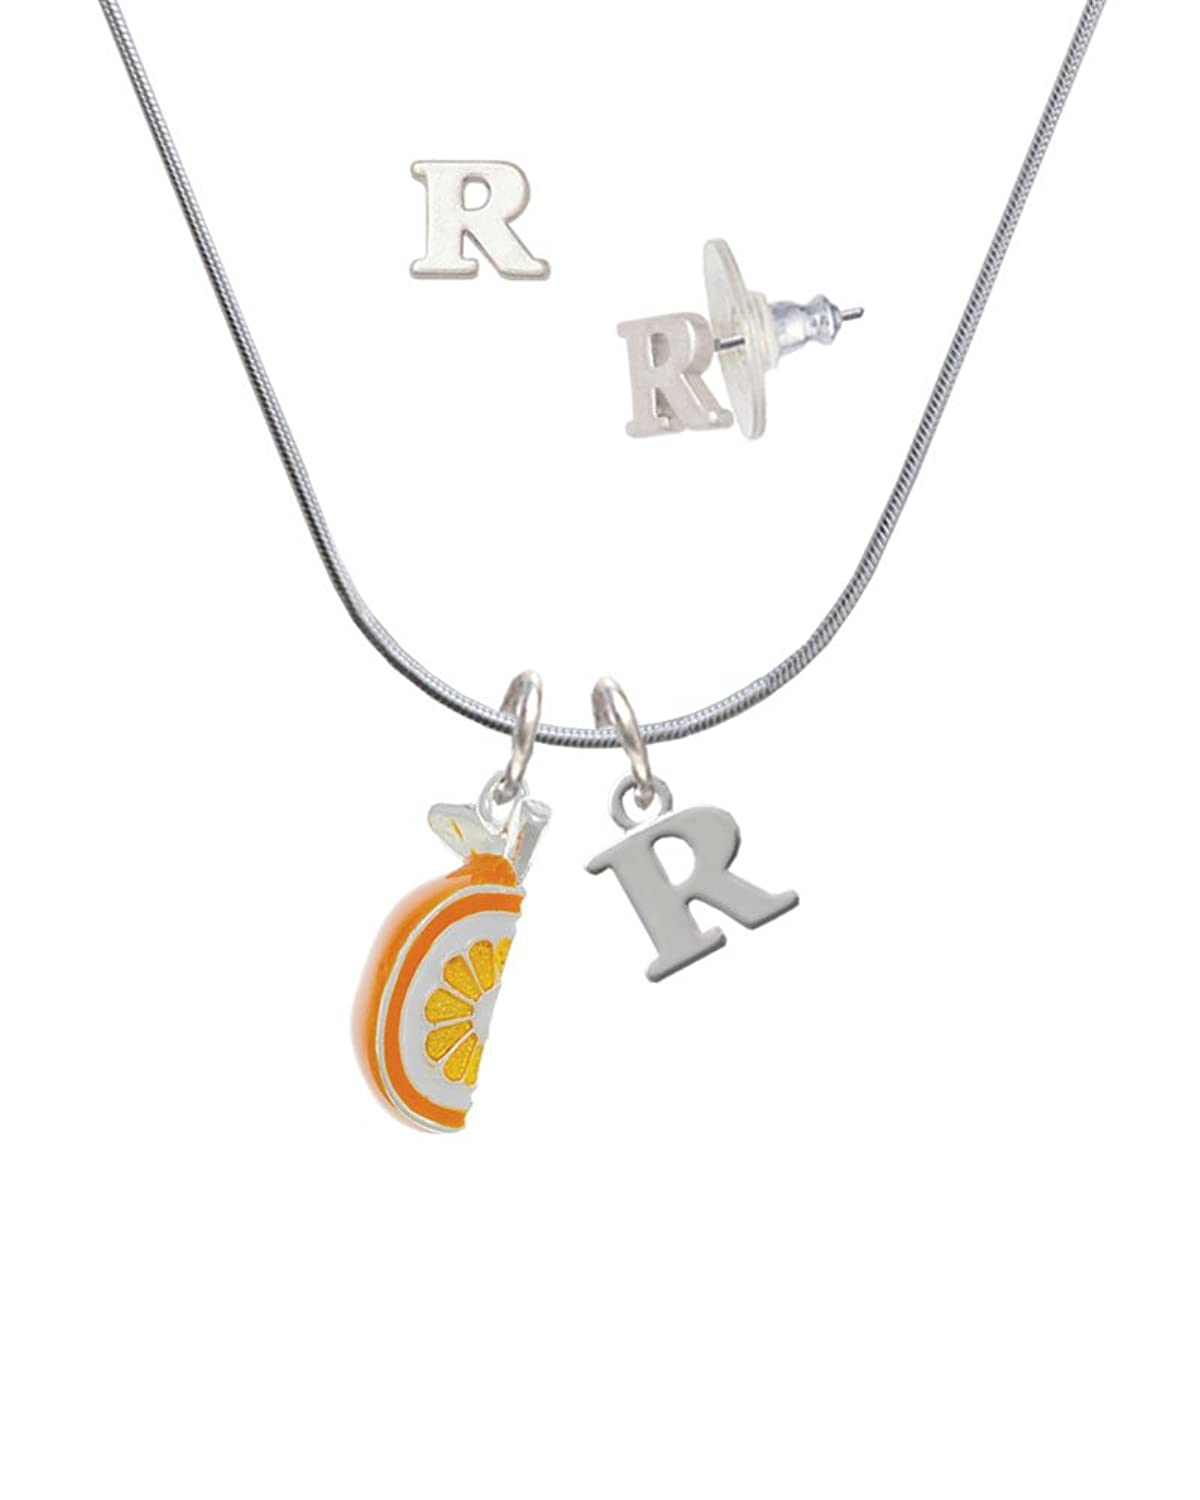 3-D Enamel Orange Slice - R Initial Charm Necklace and Stud Earrings Jewelry Set